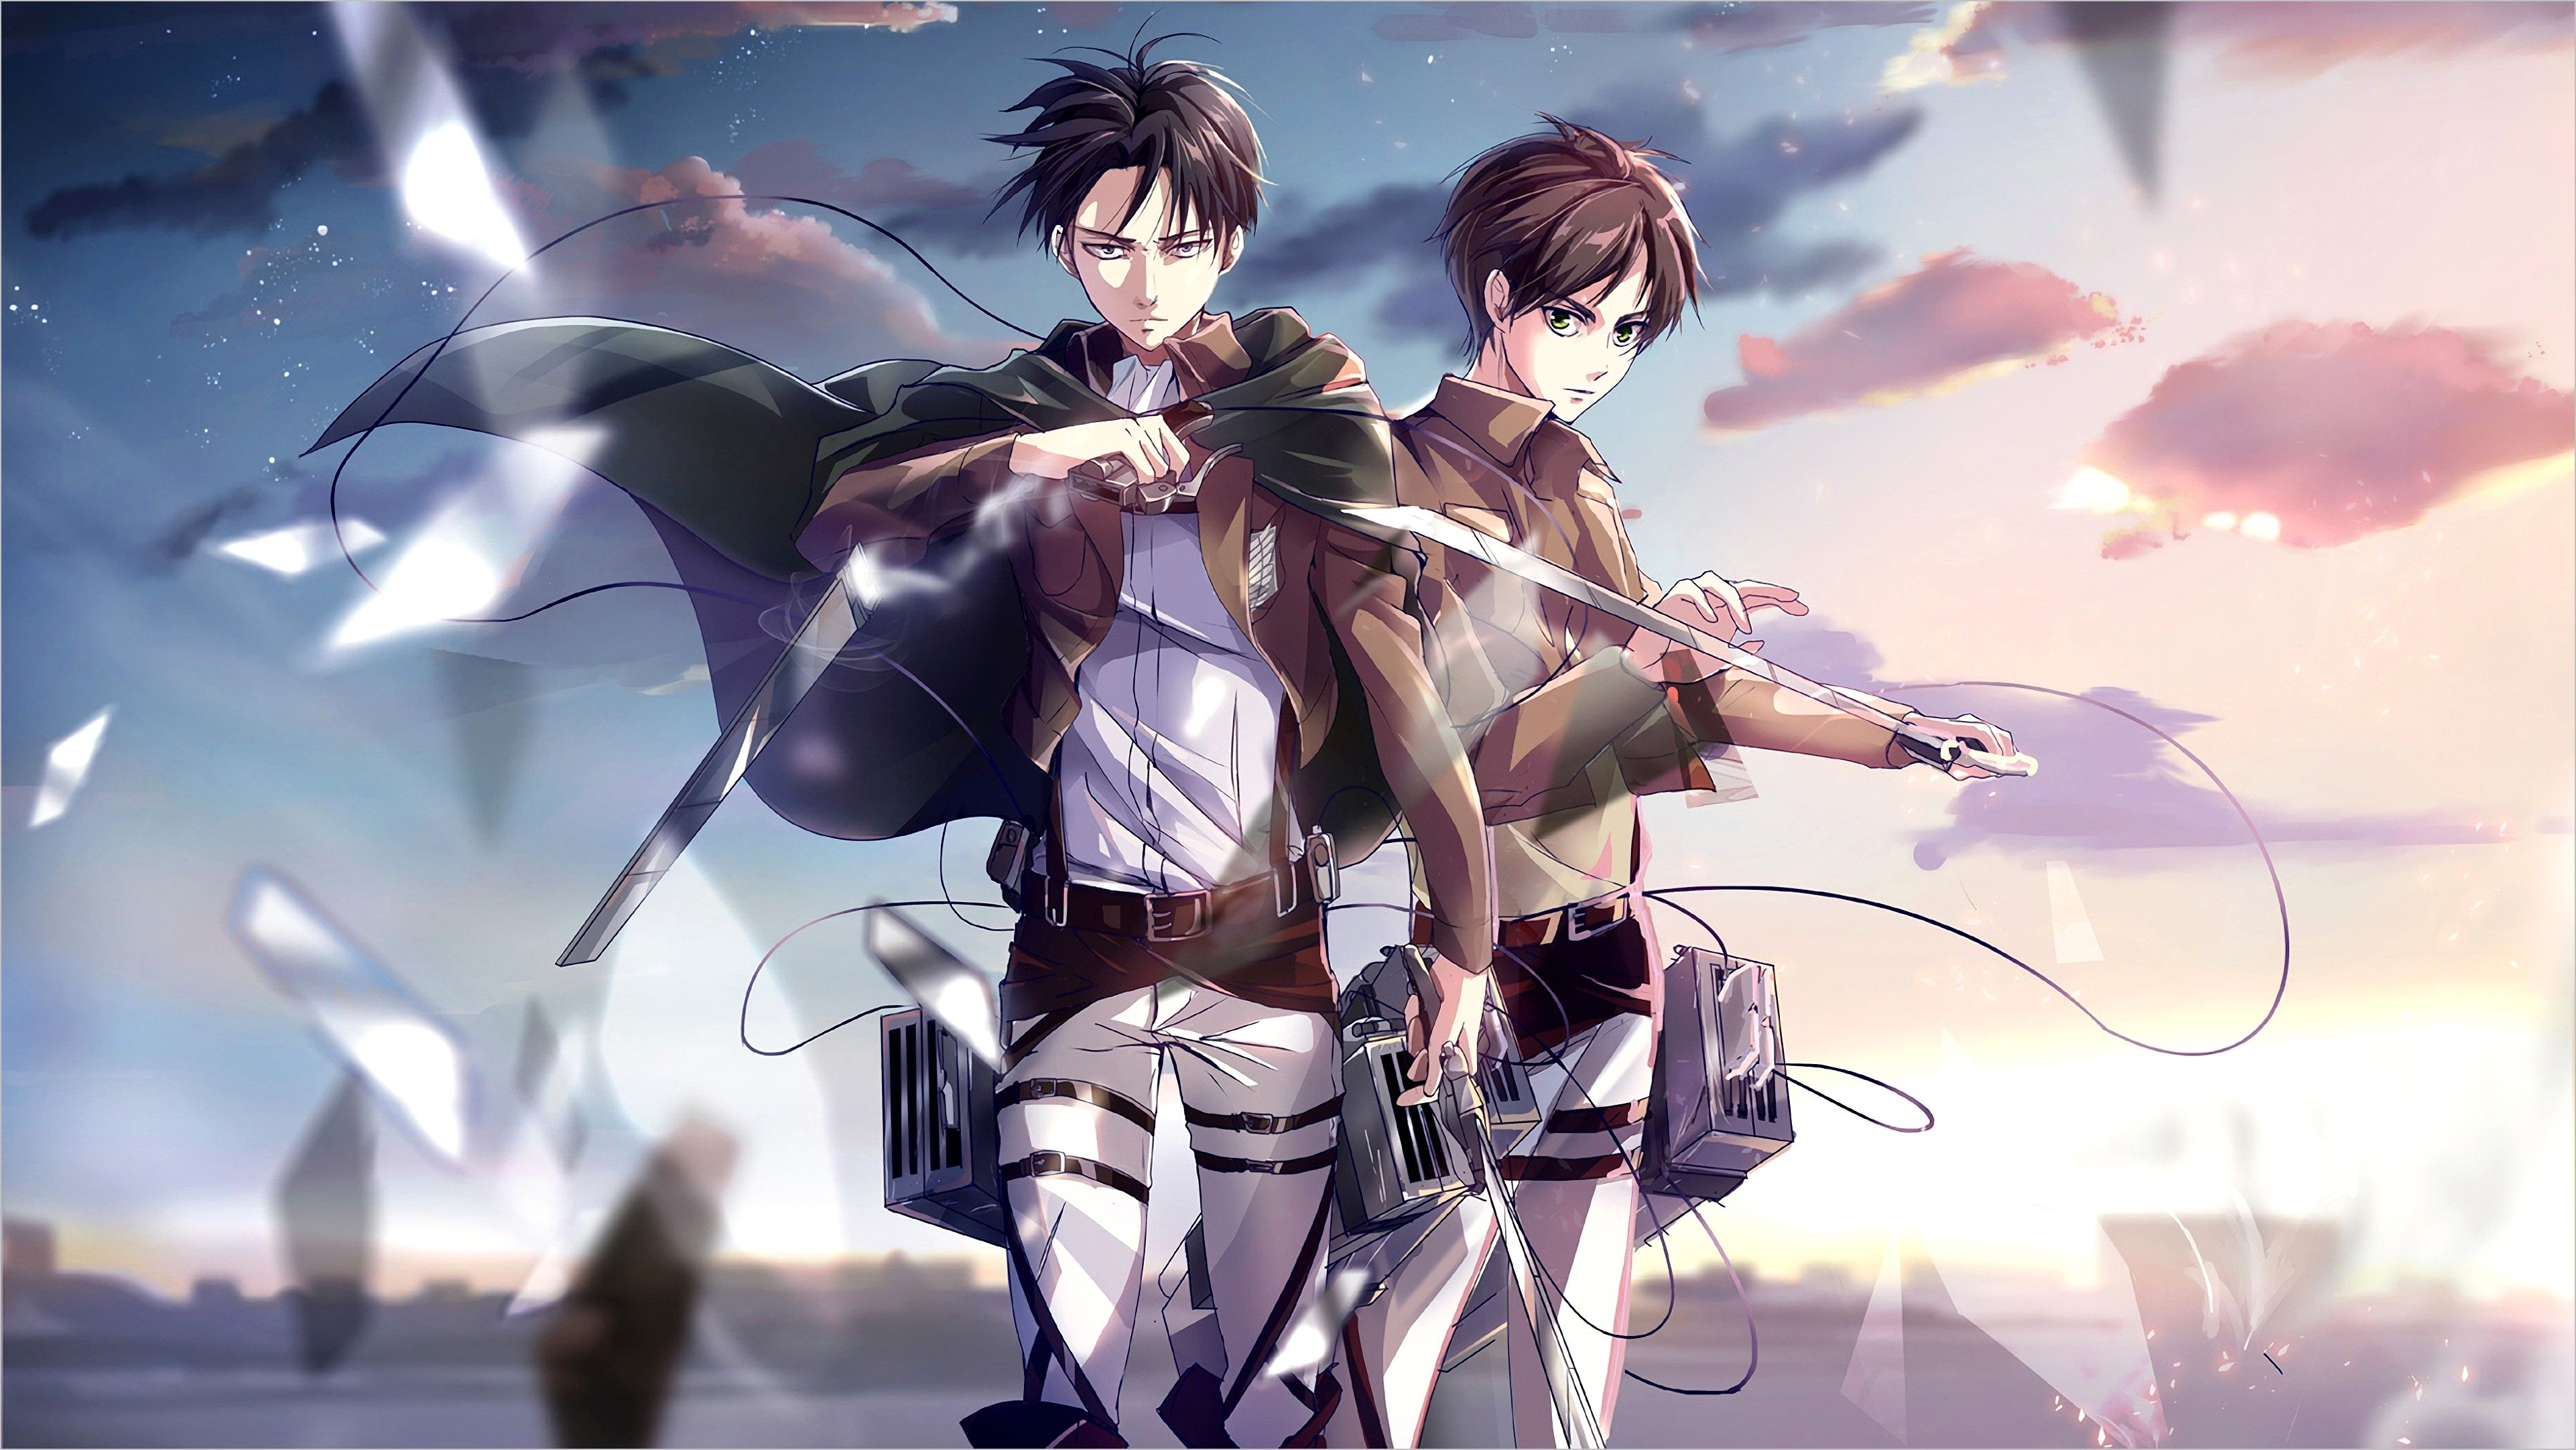 Attack On Titan 4k Wallpaper 1920 215 1080 In 2020 Attack On Titan Art Attack On Titan Levi Attack On Titan Anime